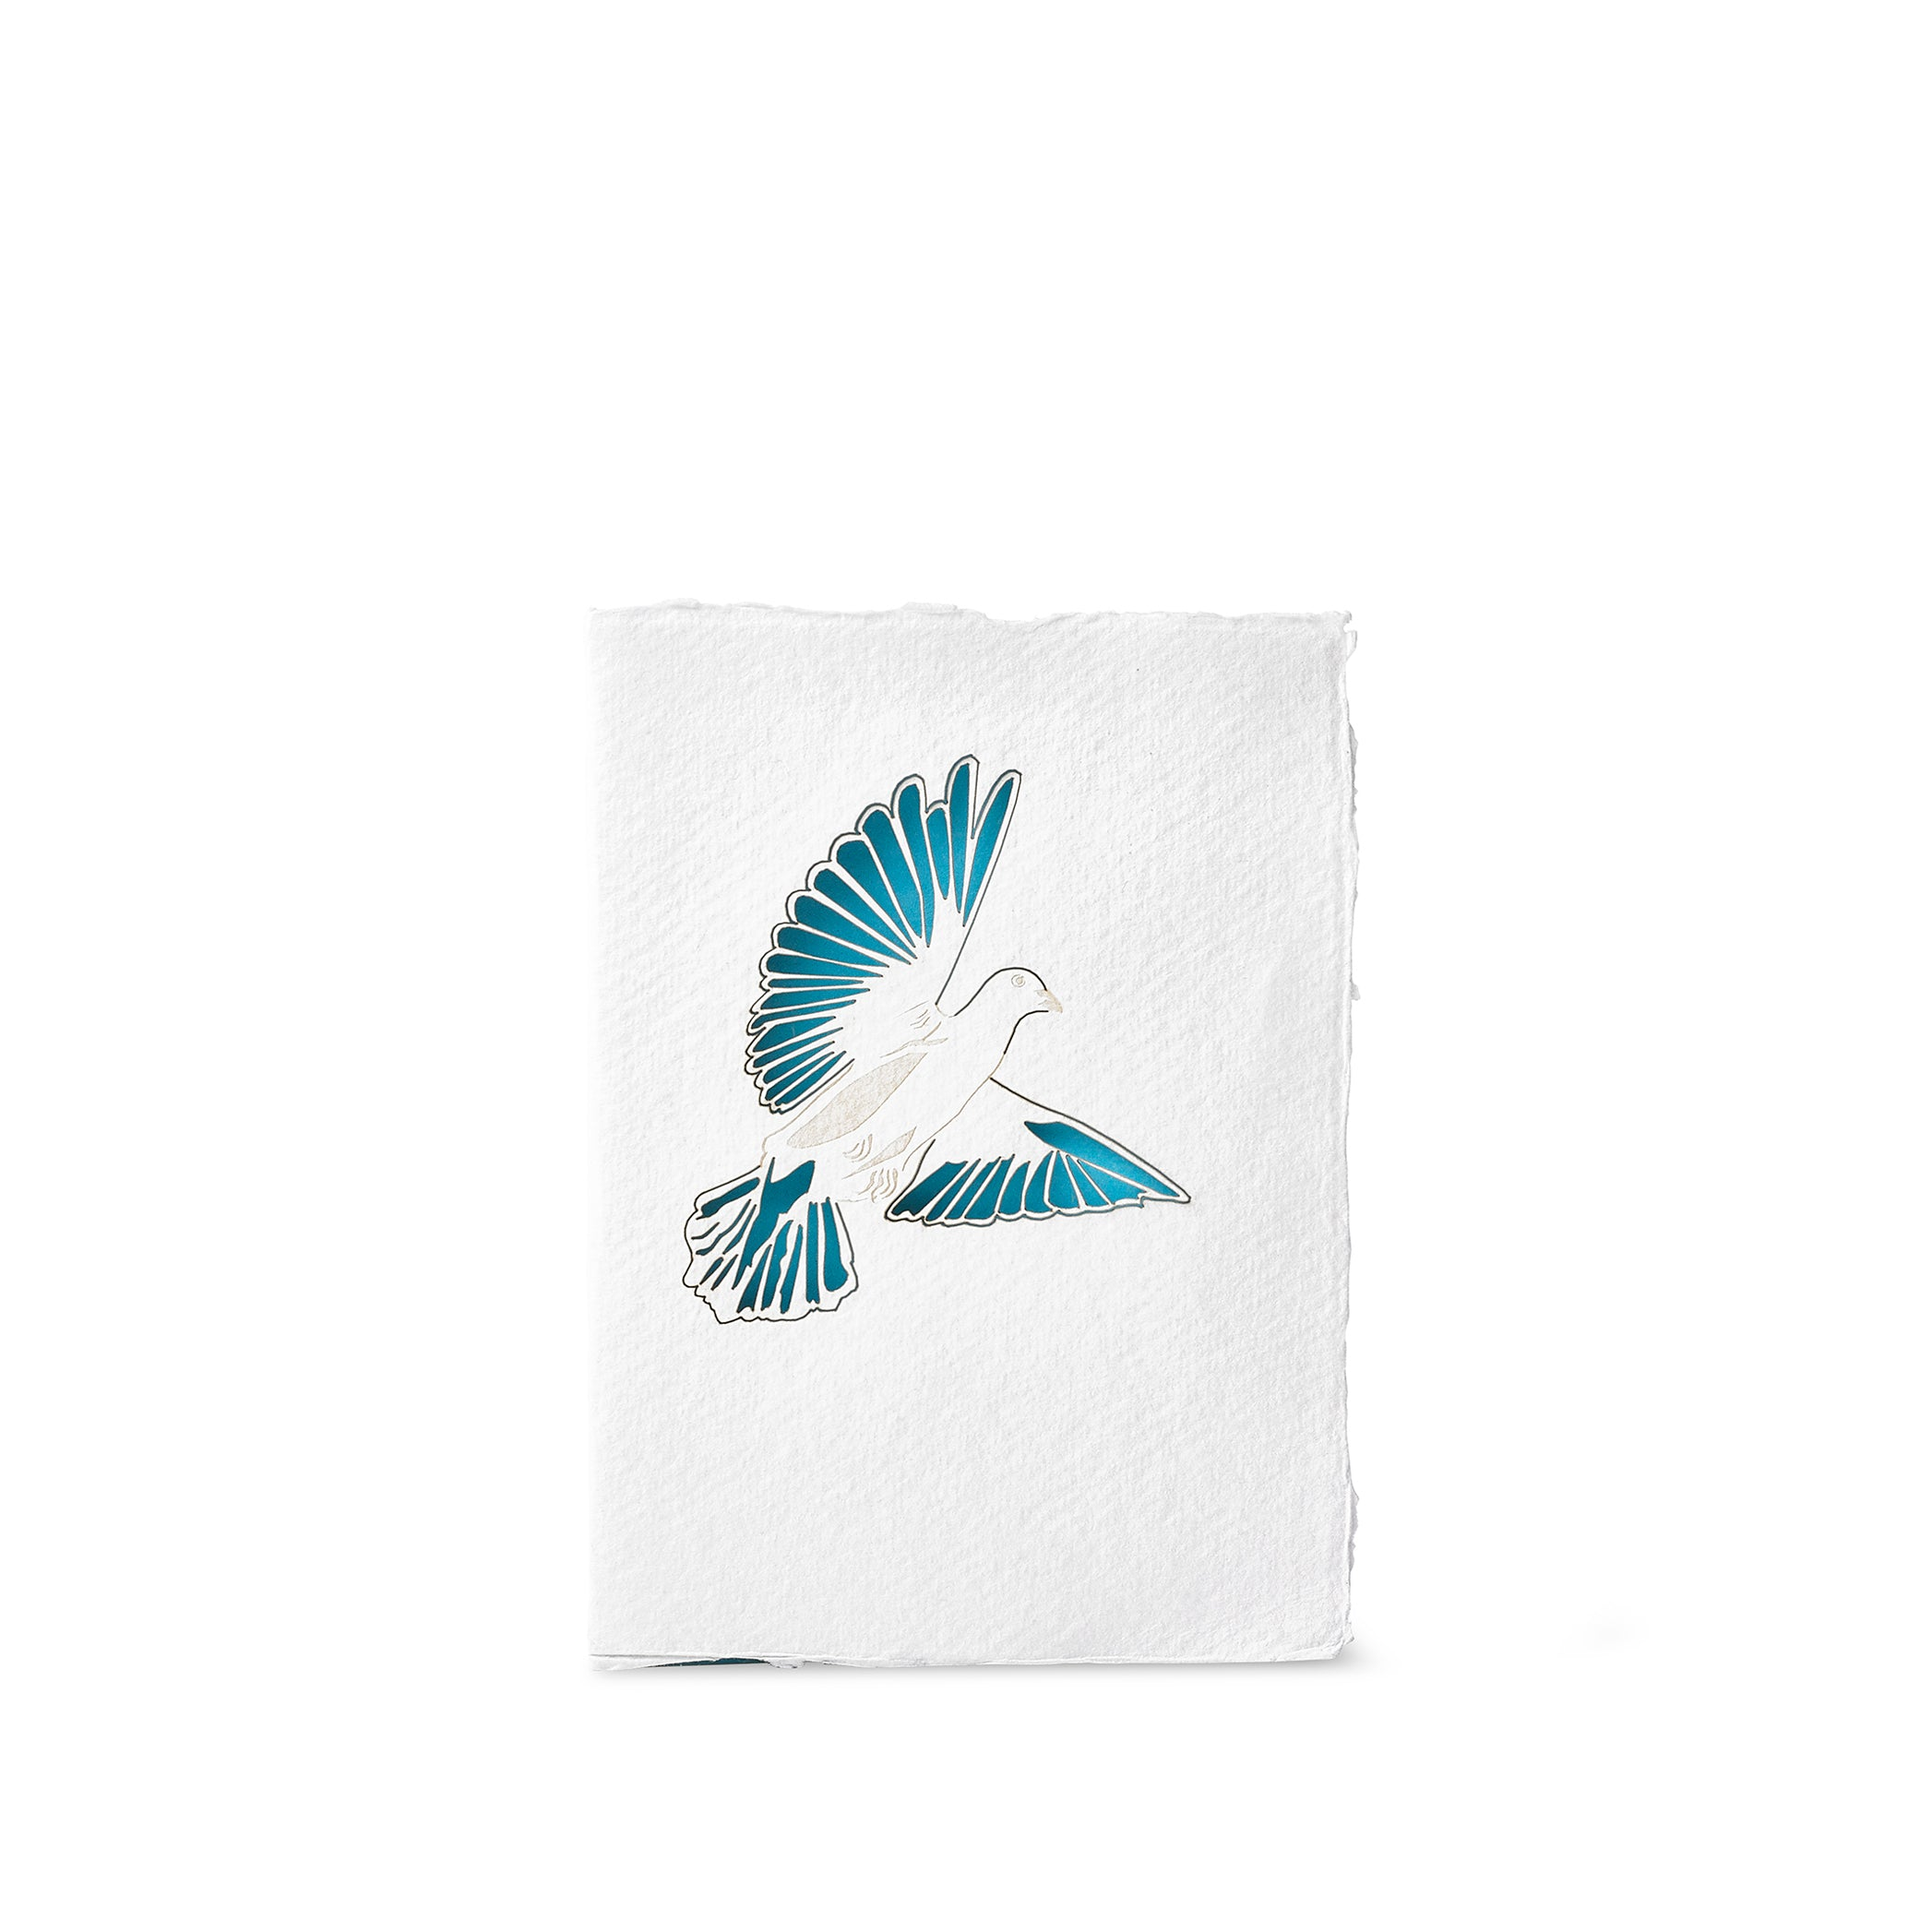 Handmade Paper Greeting Card with Dove